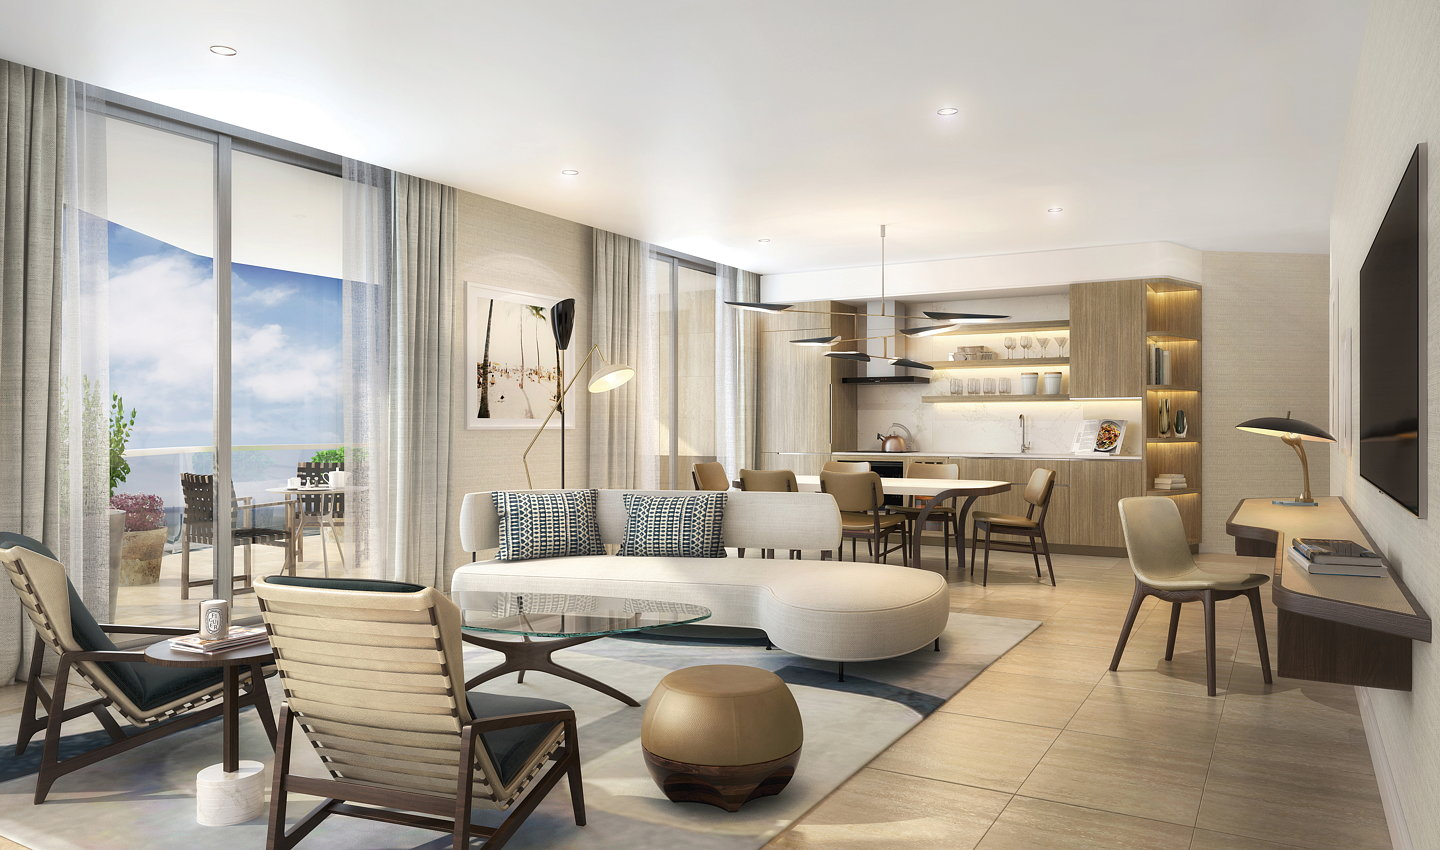 BMW Fort Lauderdale >> Kobi Karp Designs Nautical Project in Yachting Capital of ...